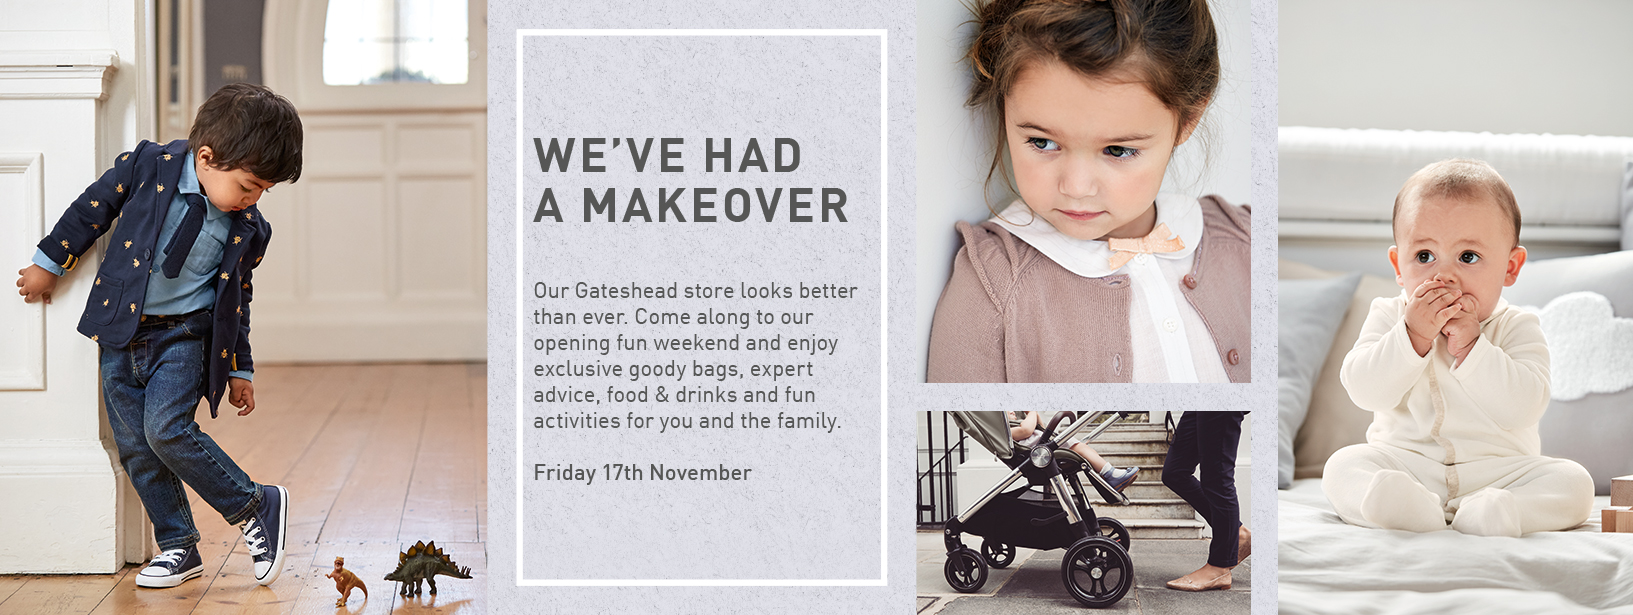 MAMAS & PAPAS STORE MAKEOVER OPENING WEEKEND